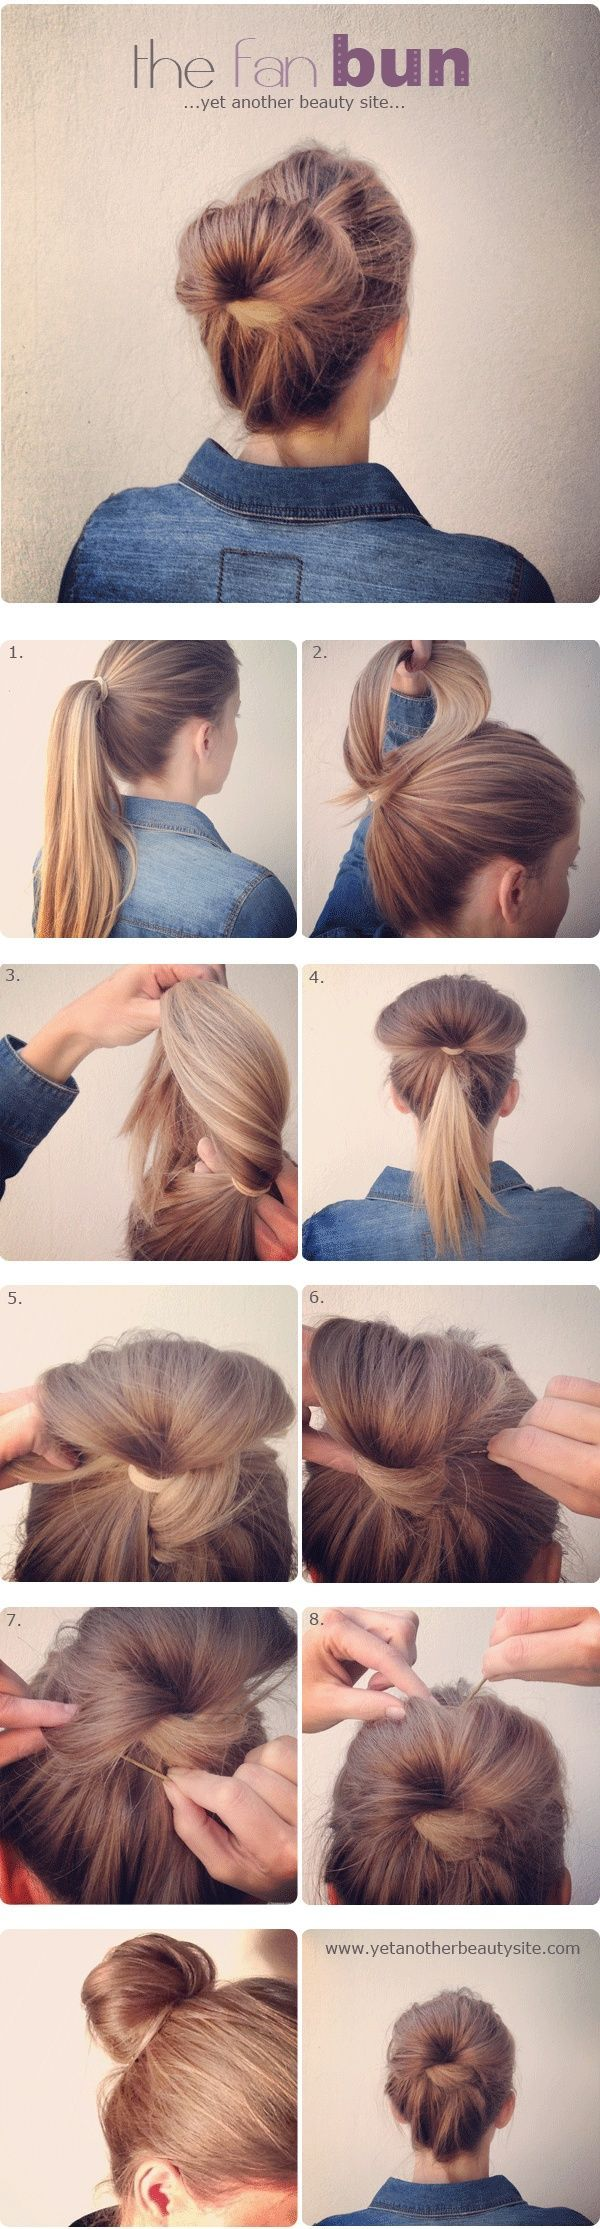 Fan bun hair pinterest fan bun haircut medium and bun hair styles